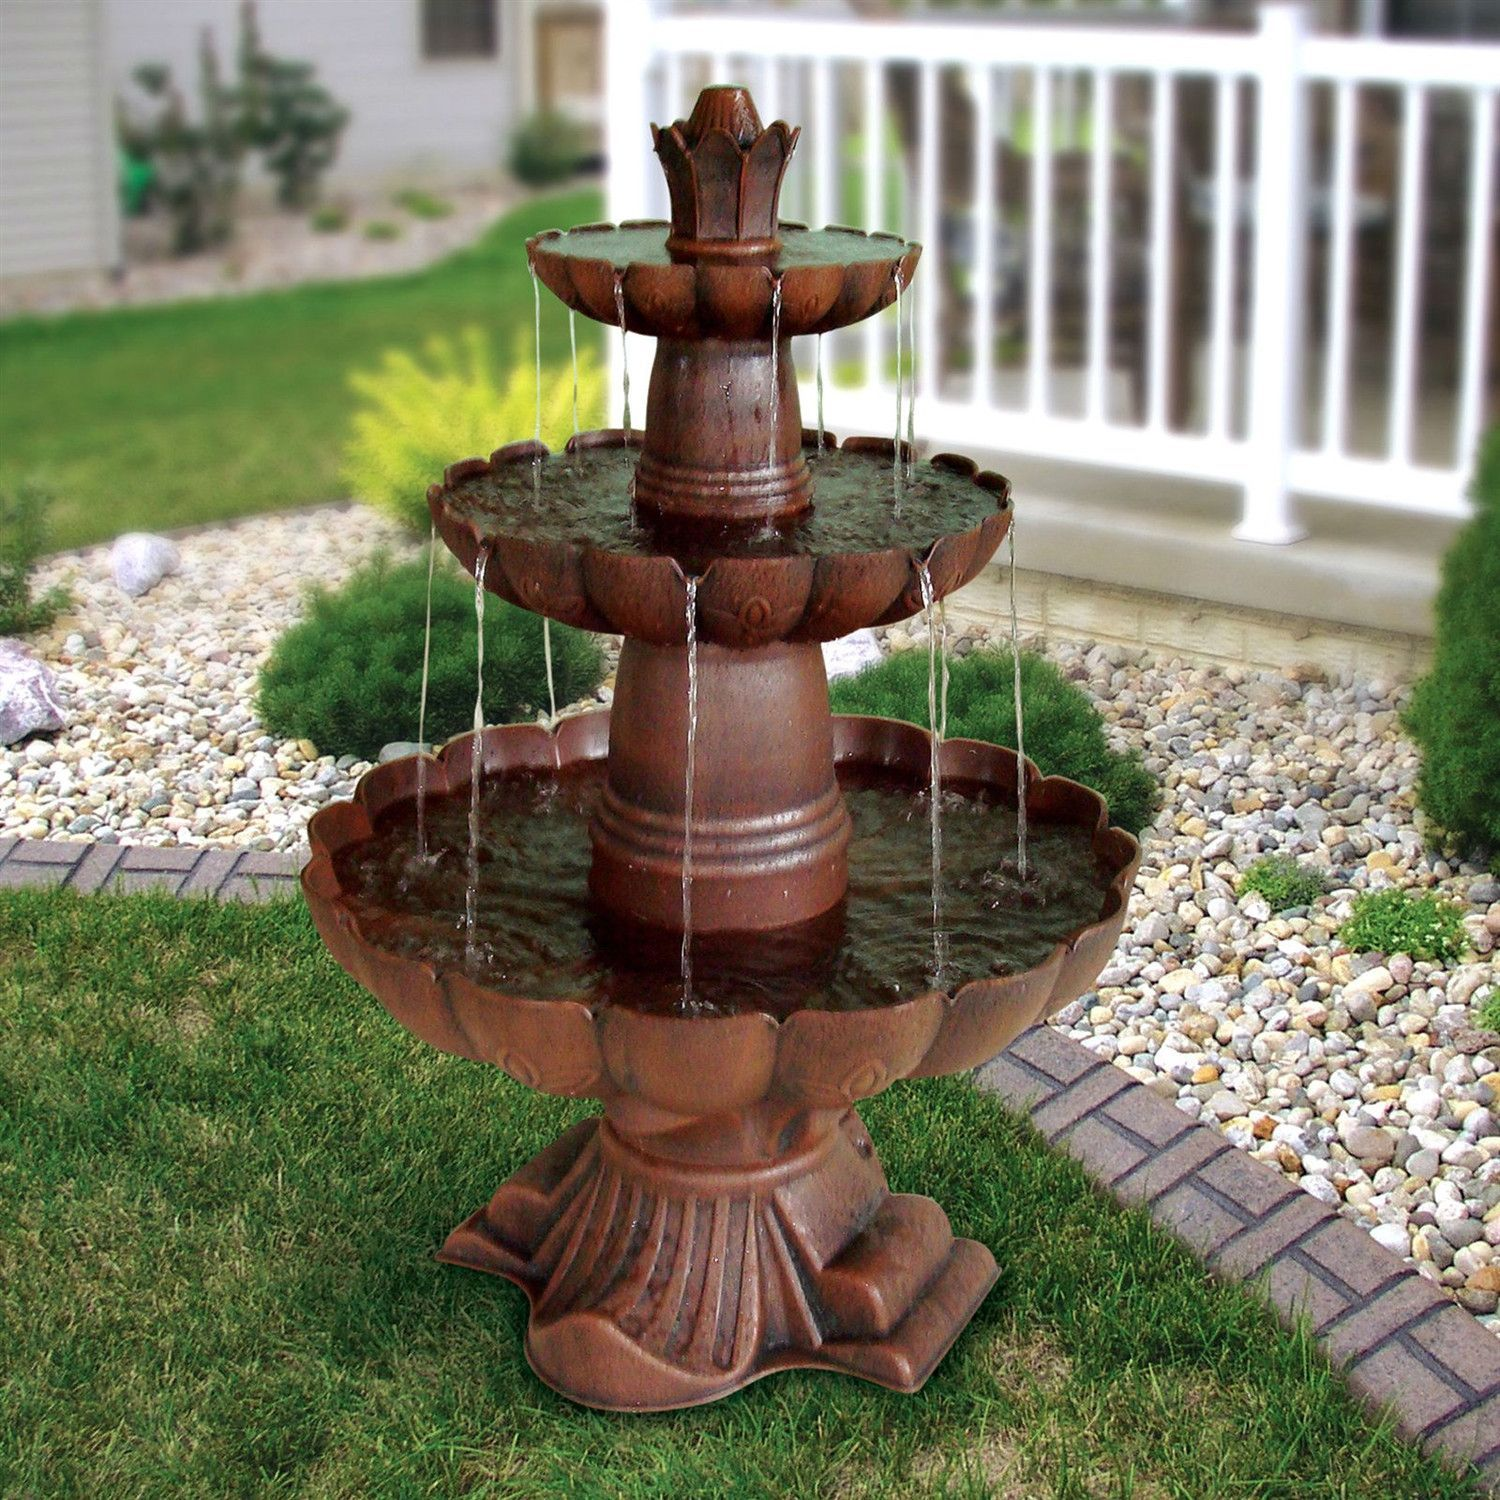 Simple Water Features For The Garden: Give Your Yard A Professionally Landscaped Look With This